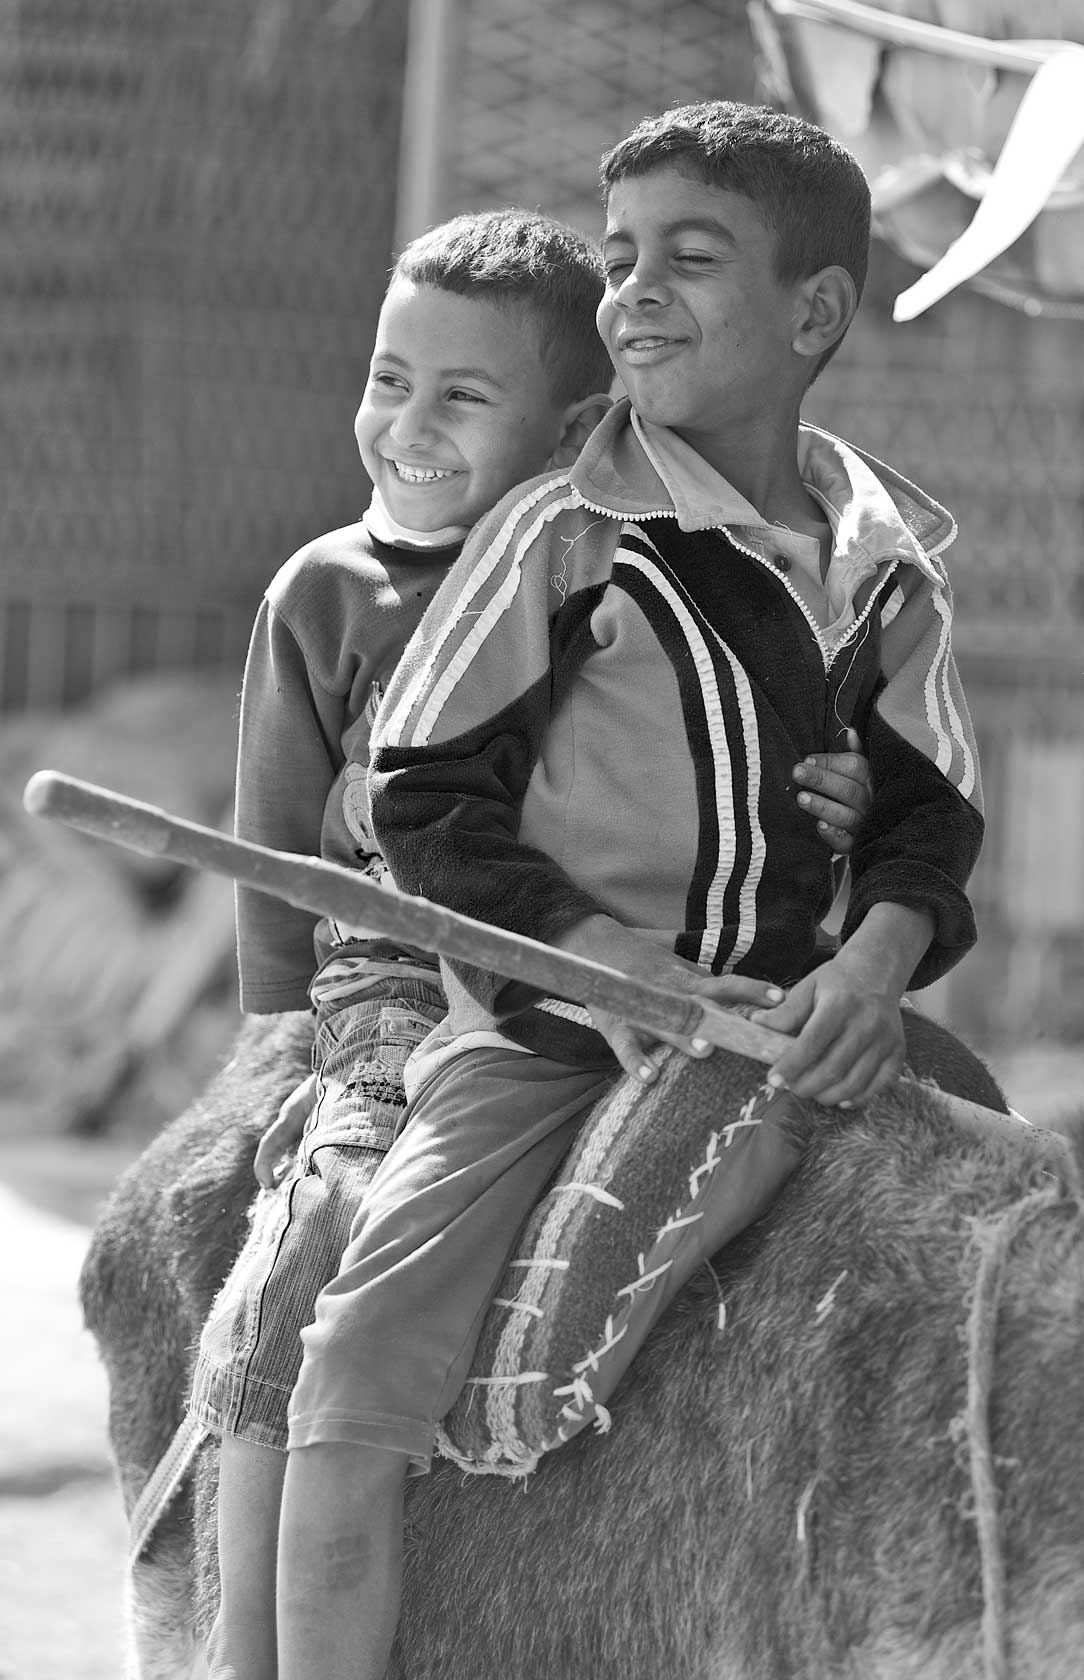 090100_DSC3108-kids-in-Luxor-village-mugging-for-camera.jpg